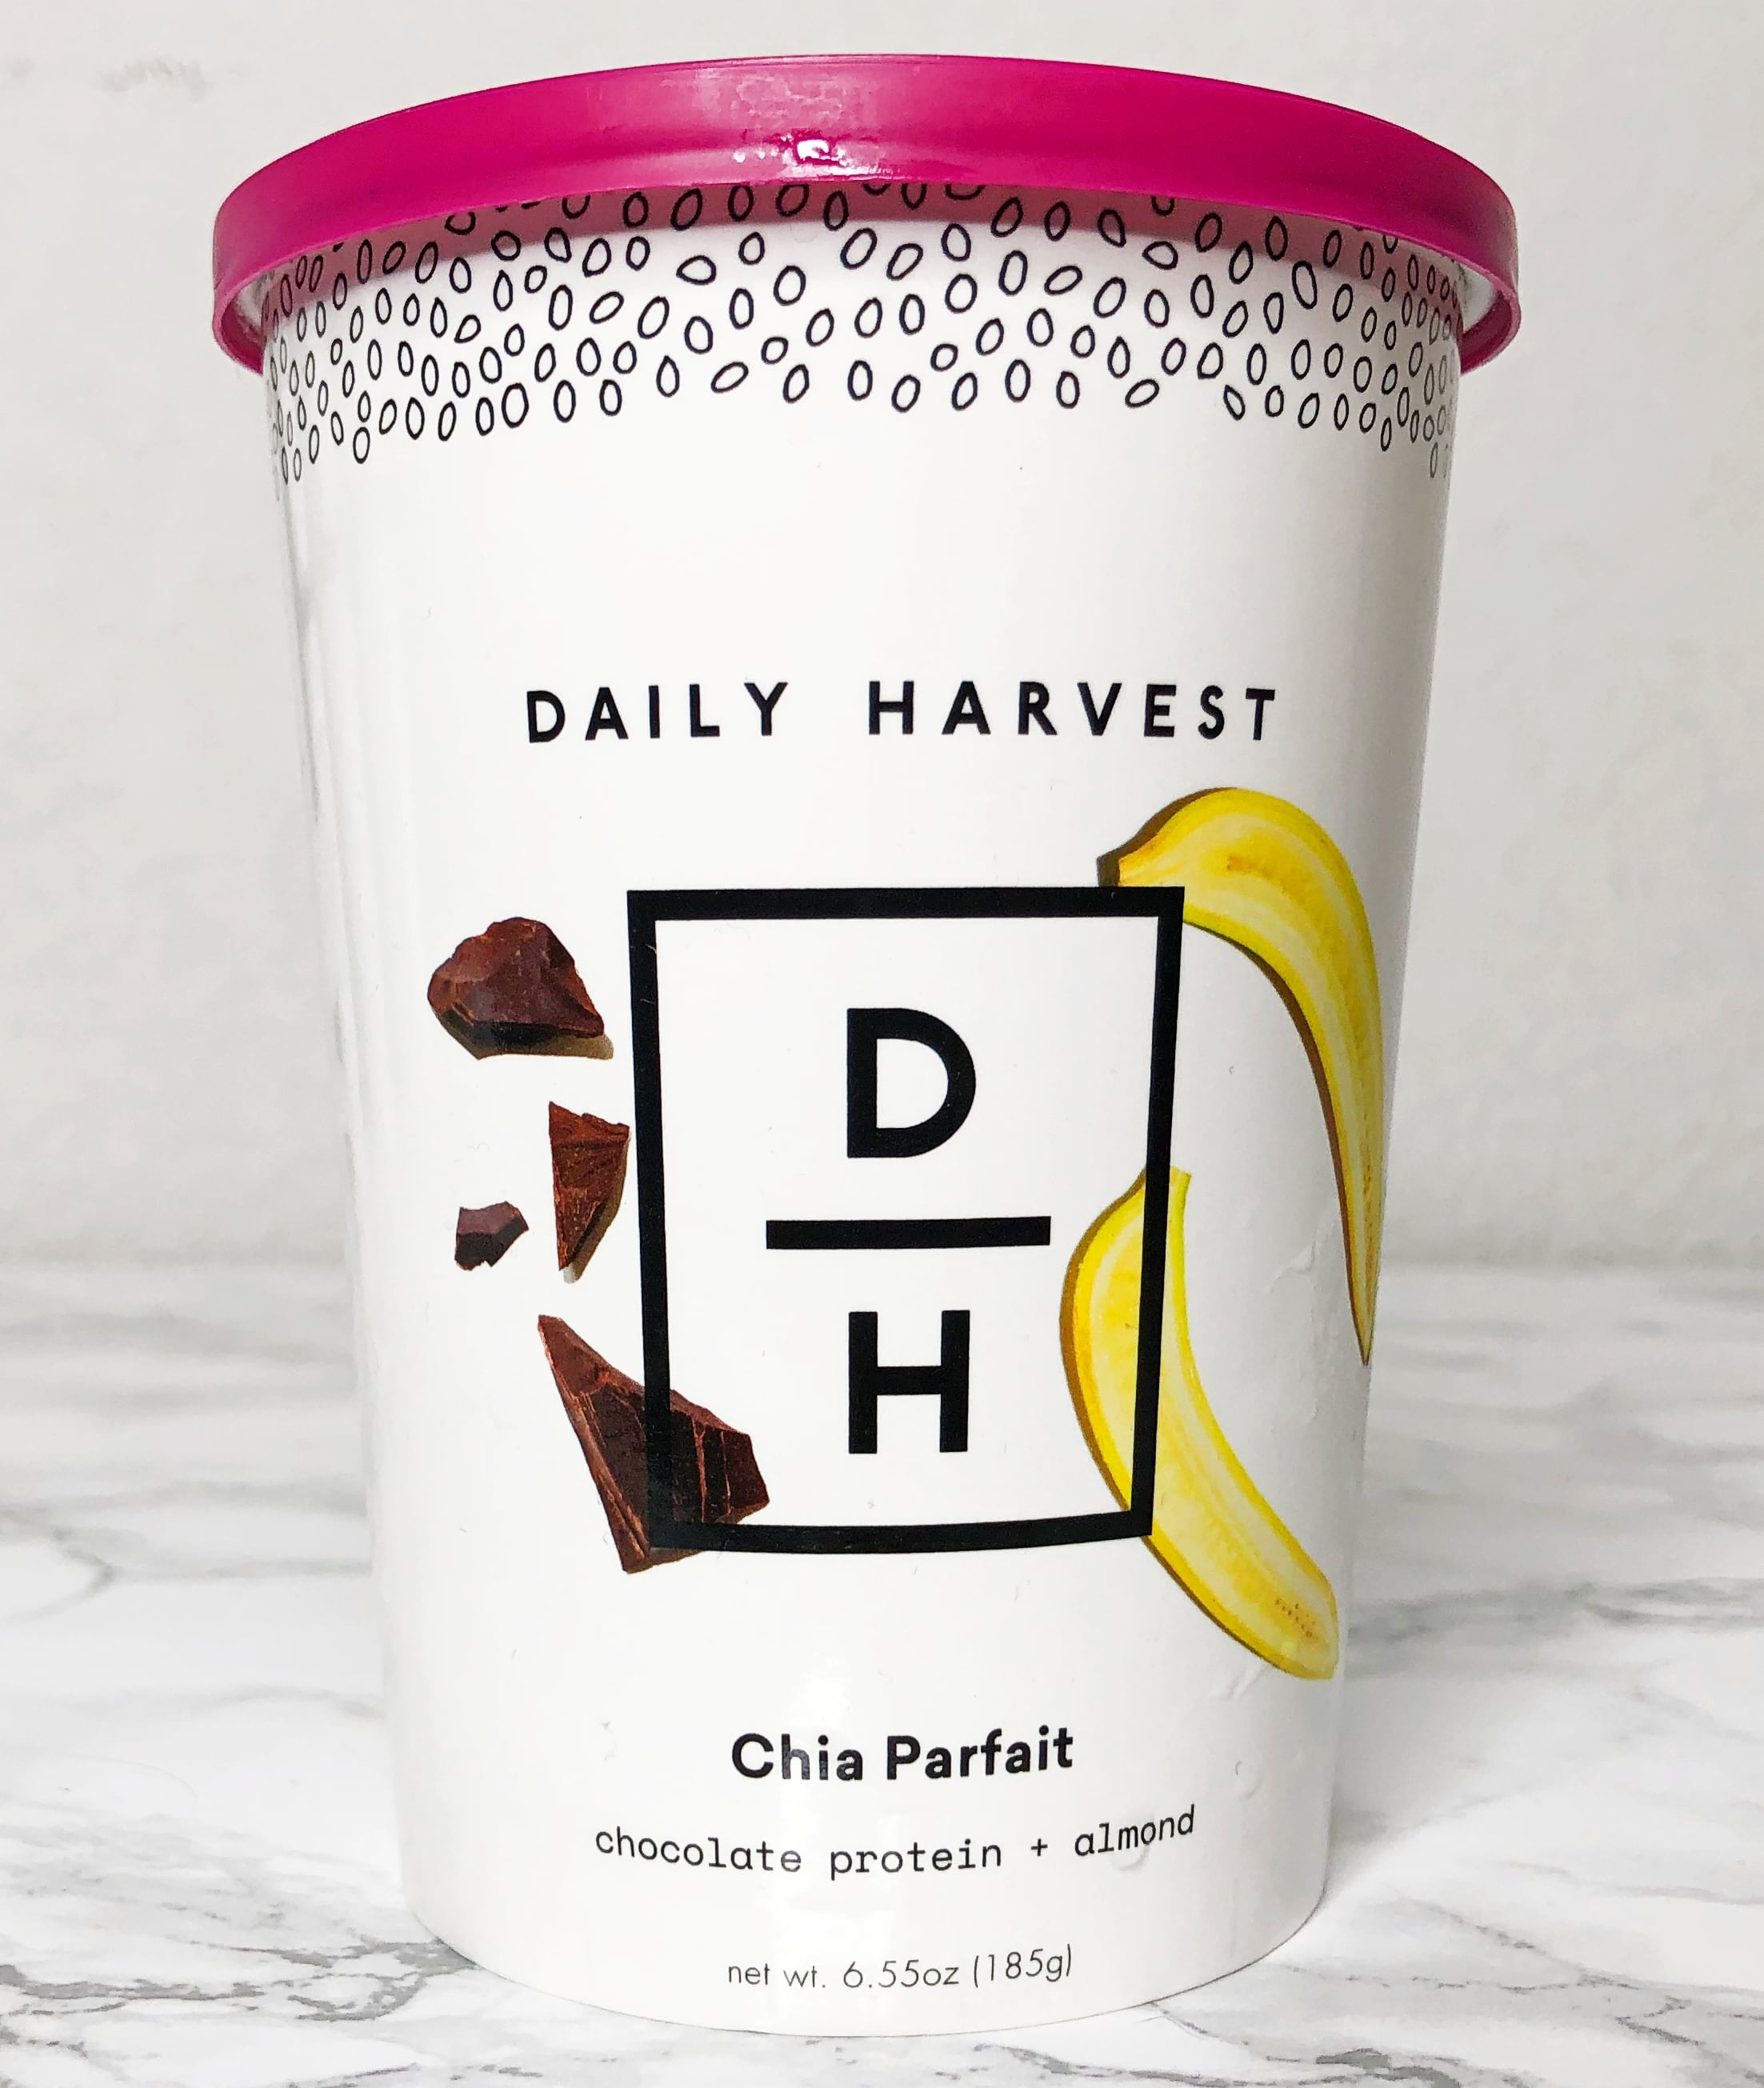 Daily Harvest Reviews - Chia Parfait